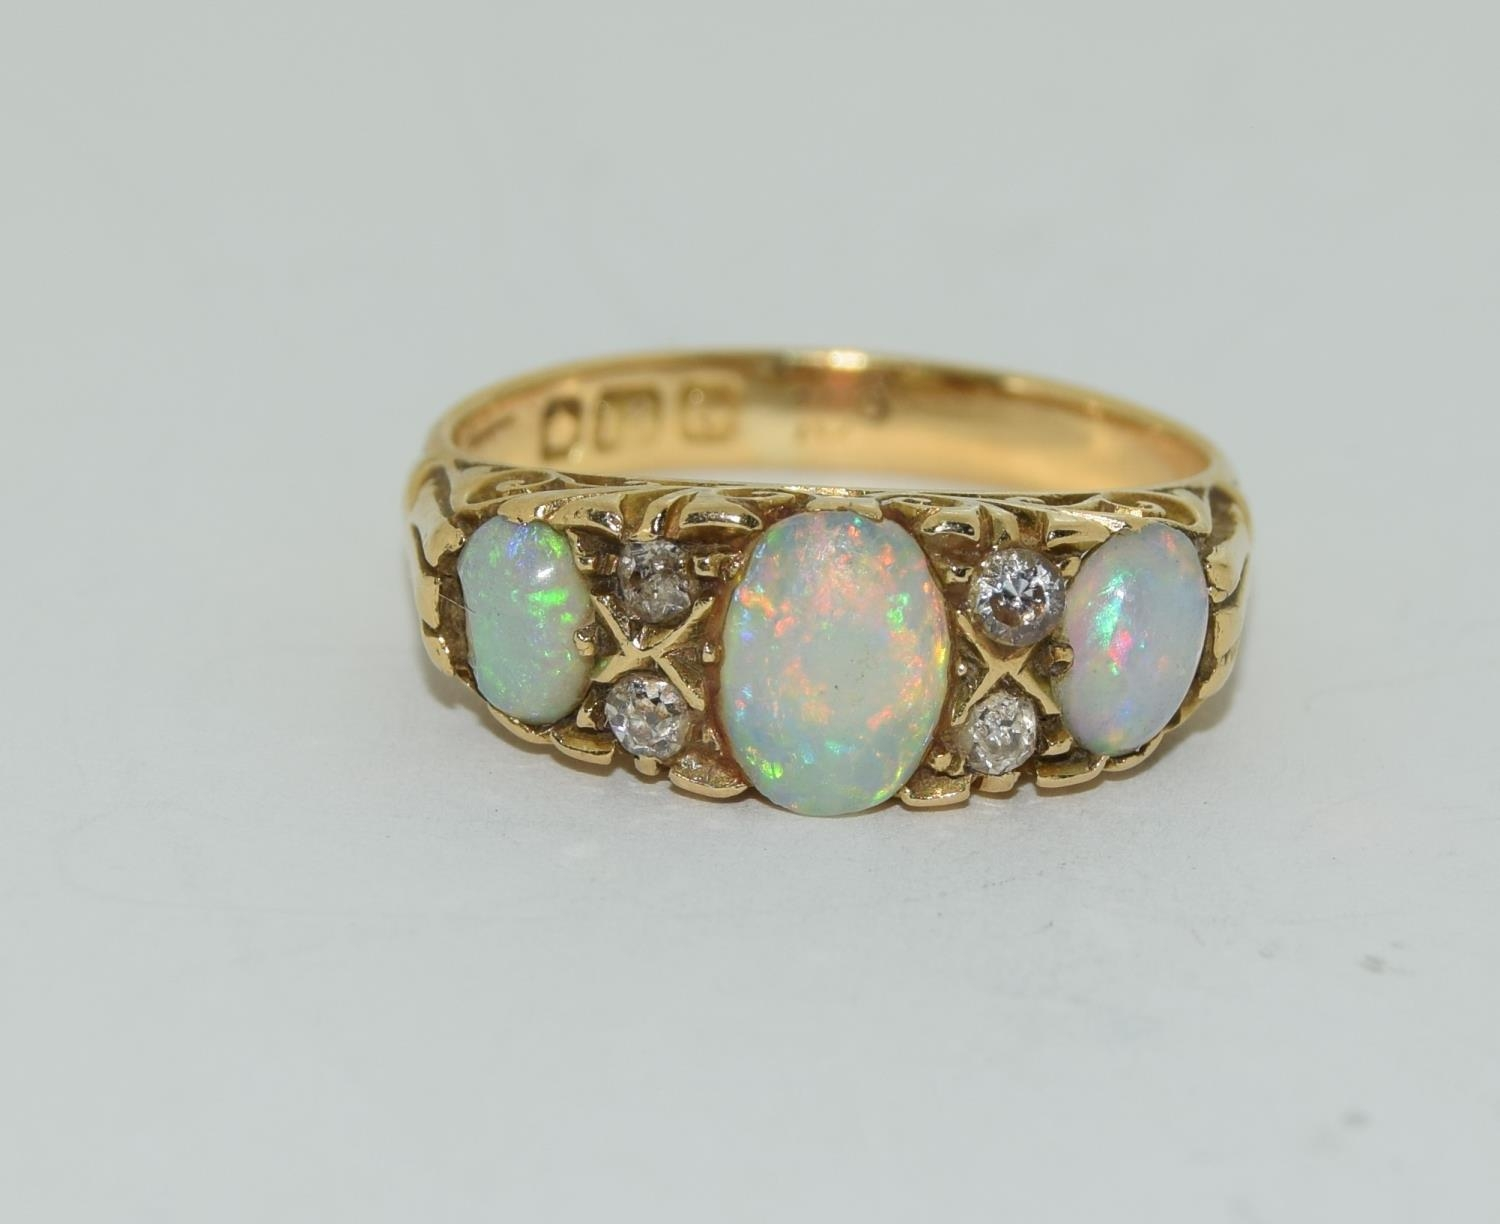 18ct gold ladies 3 stone opal and diamond ring size M